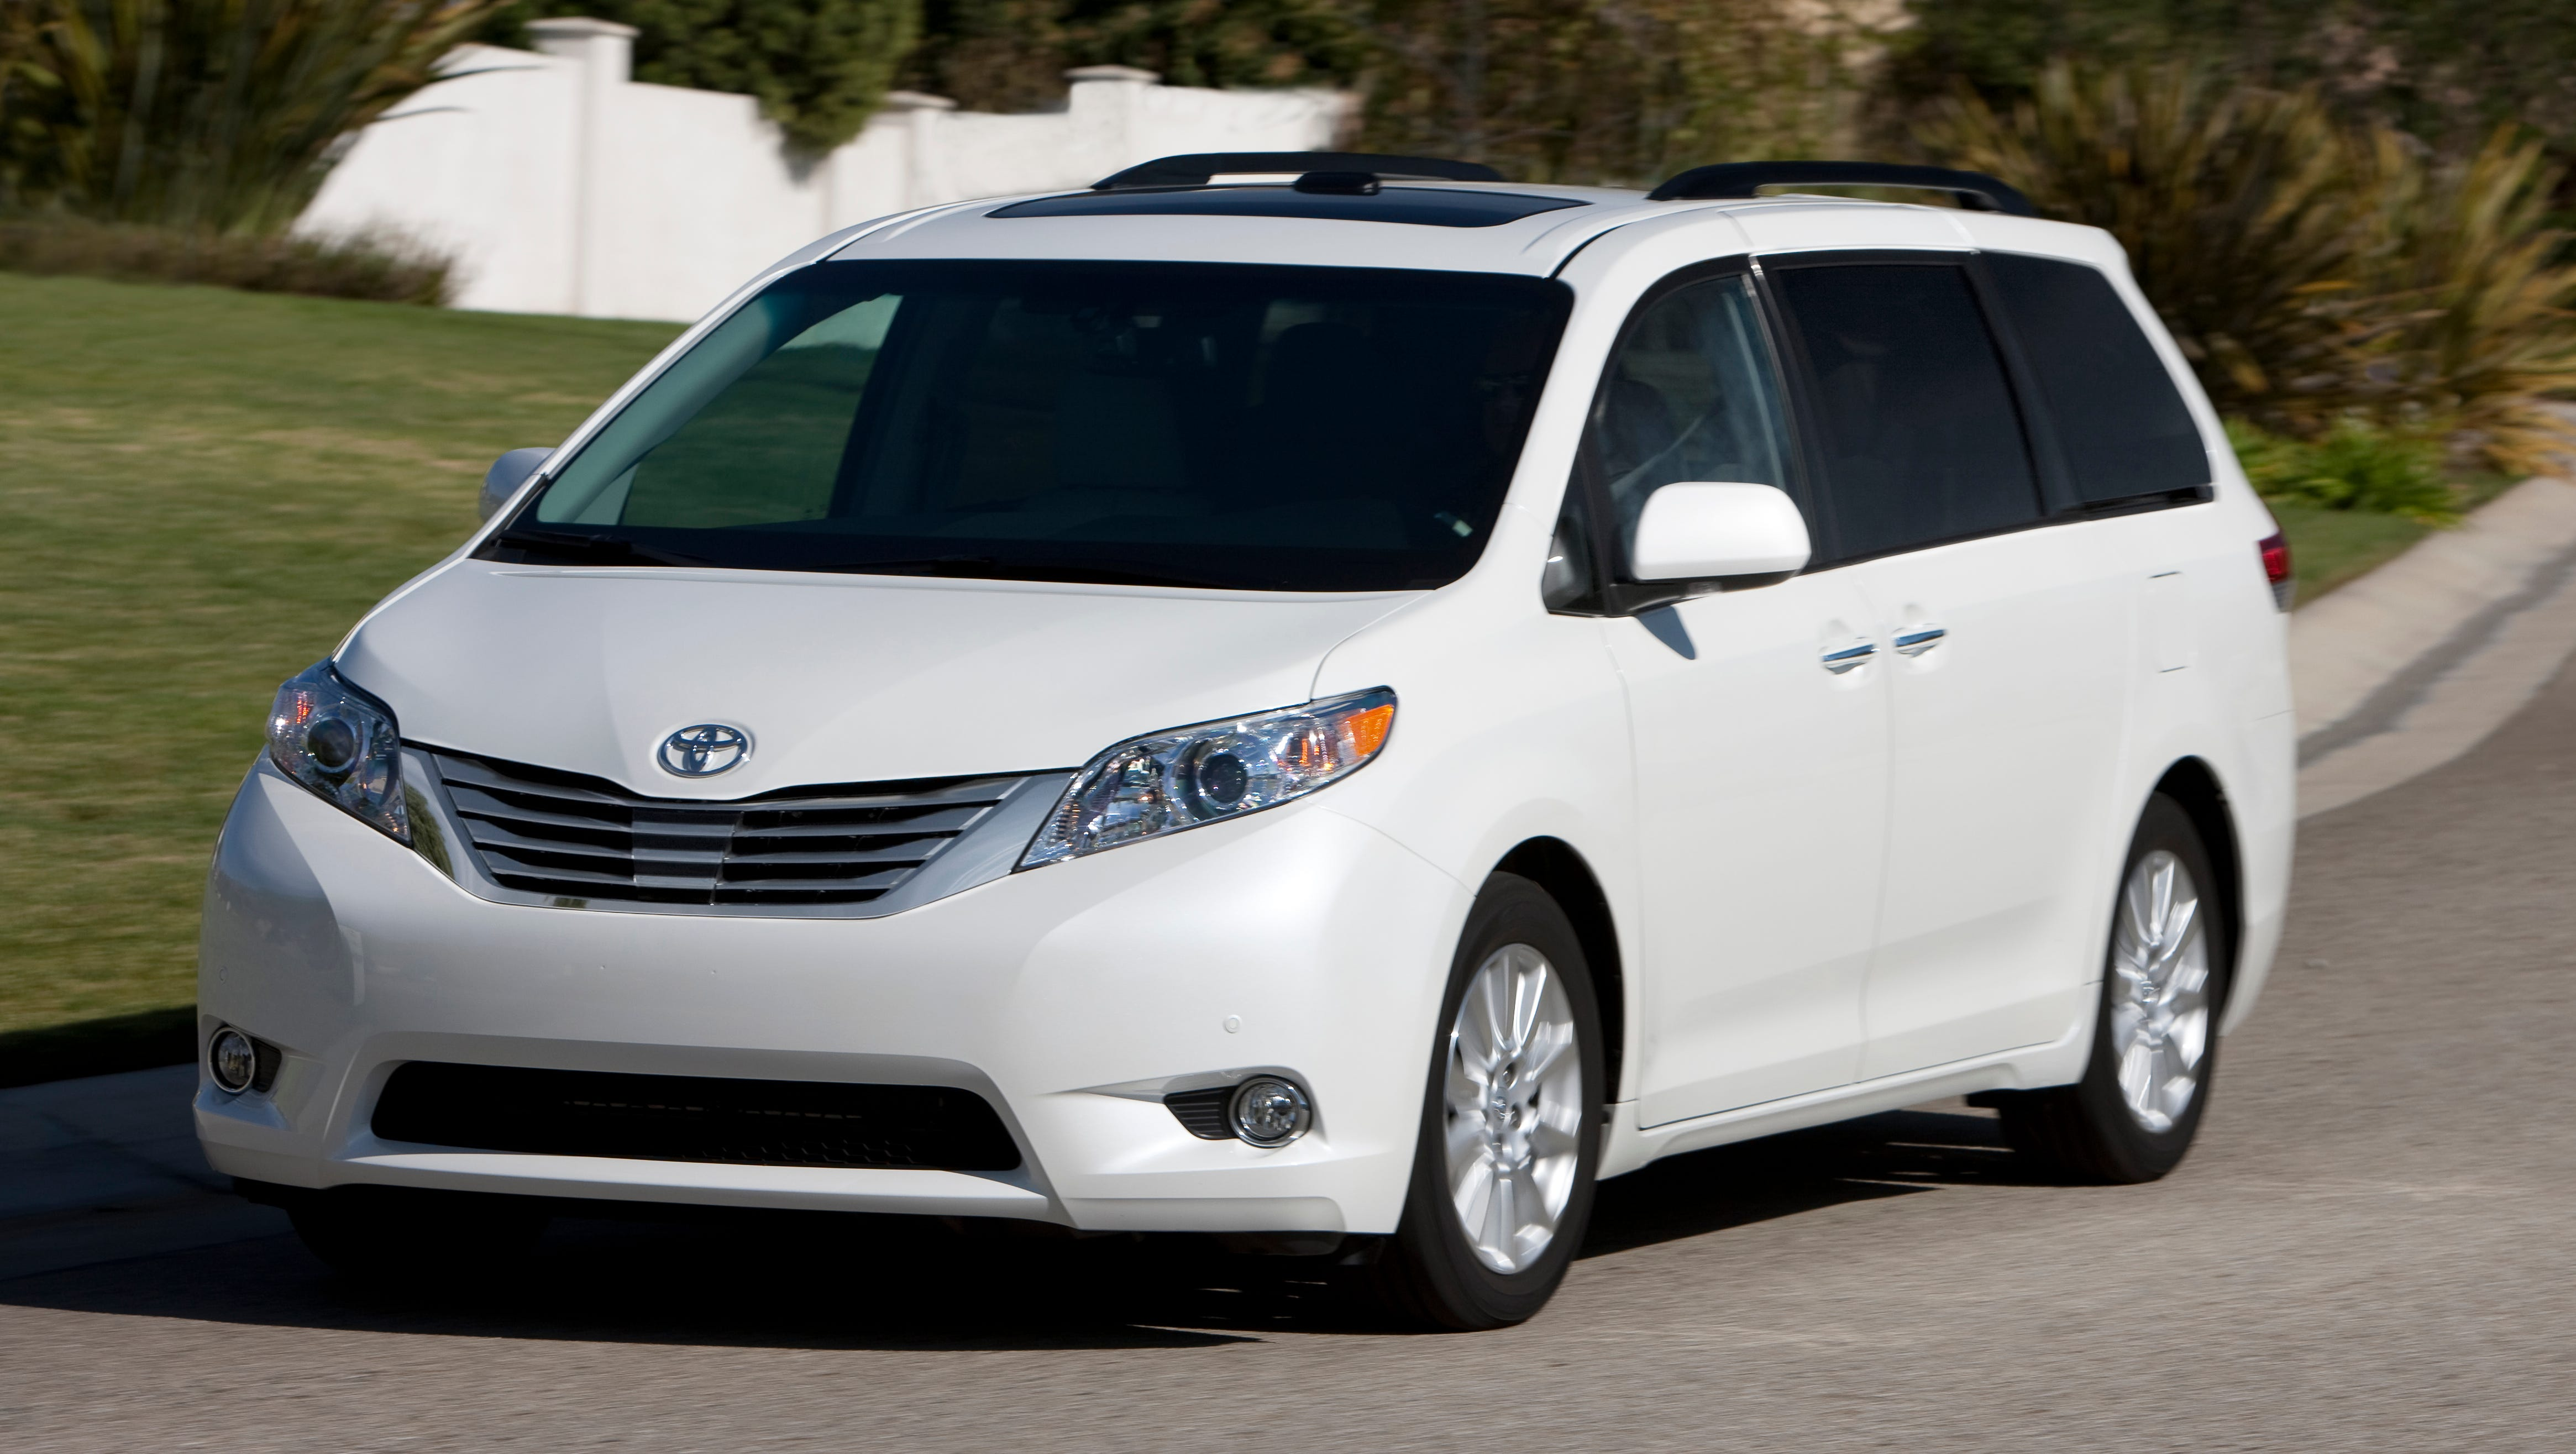 This year's Edmunds.com Top 10 Best Cars for Short Drivers includes the Toyota Sienna minivan, starting at $27,445, the biggest vehicle on the list.